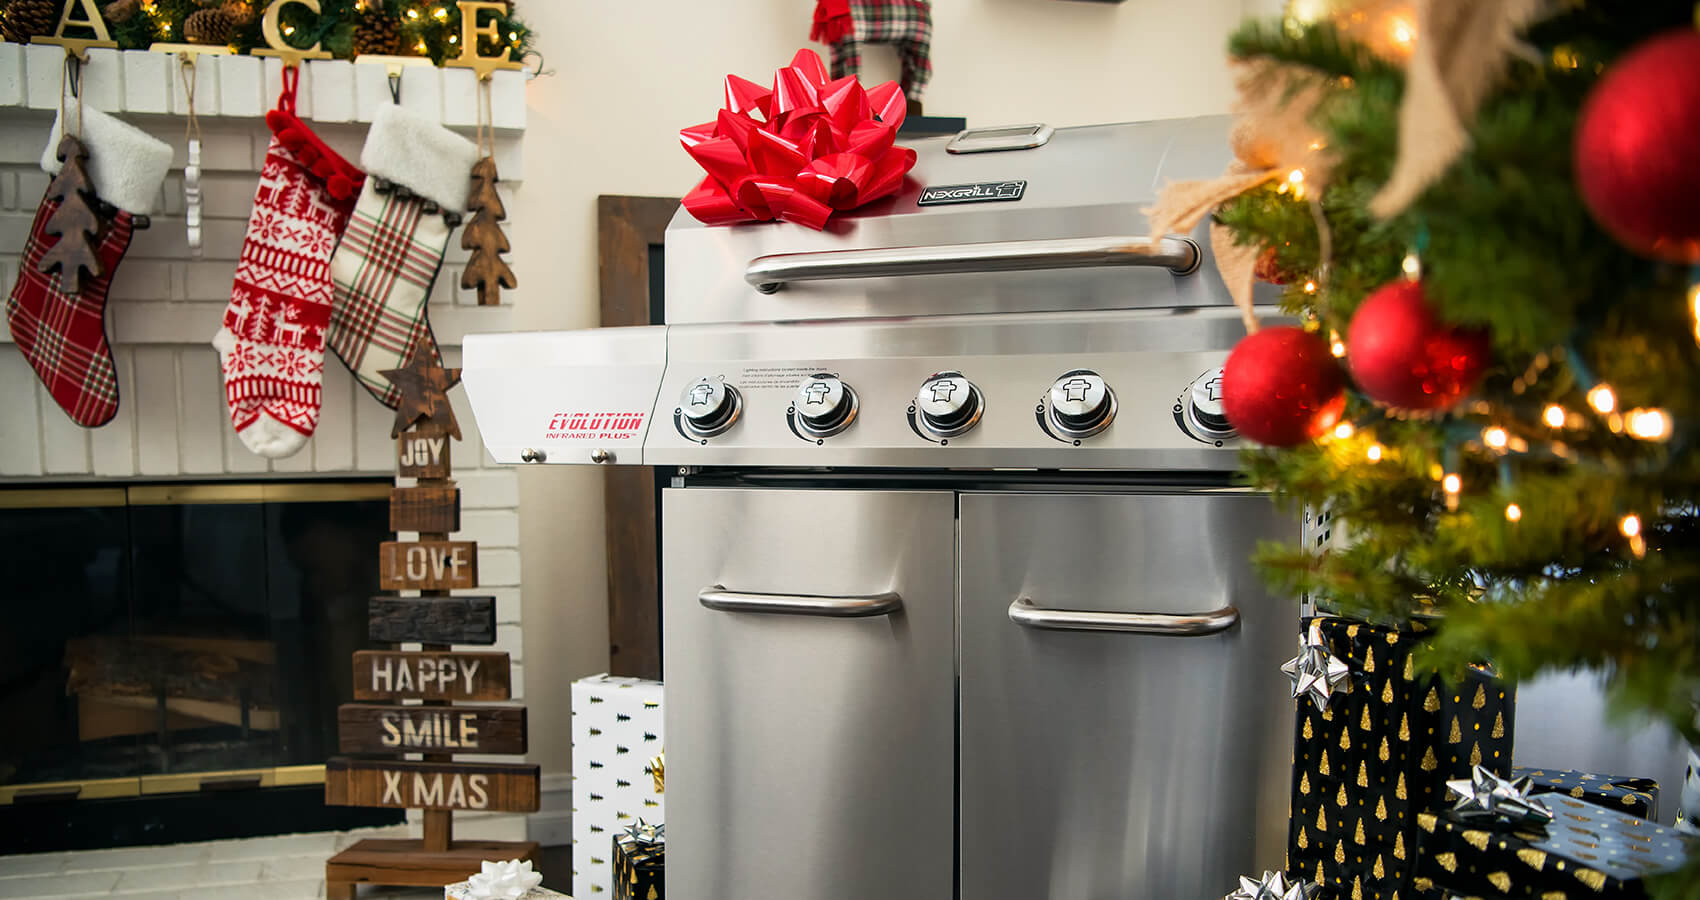 nexgrill grill under the christmas tree